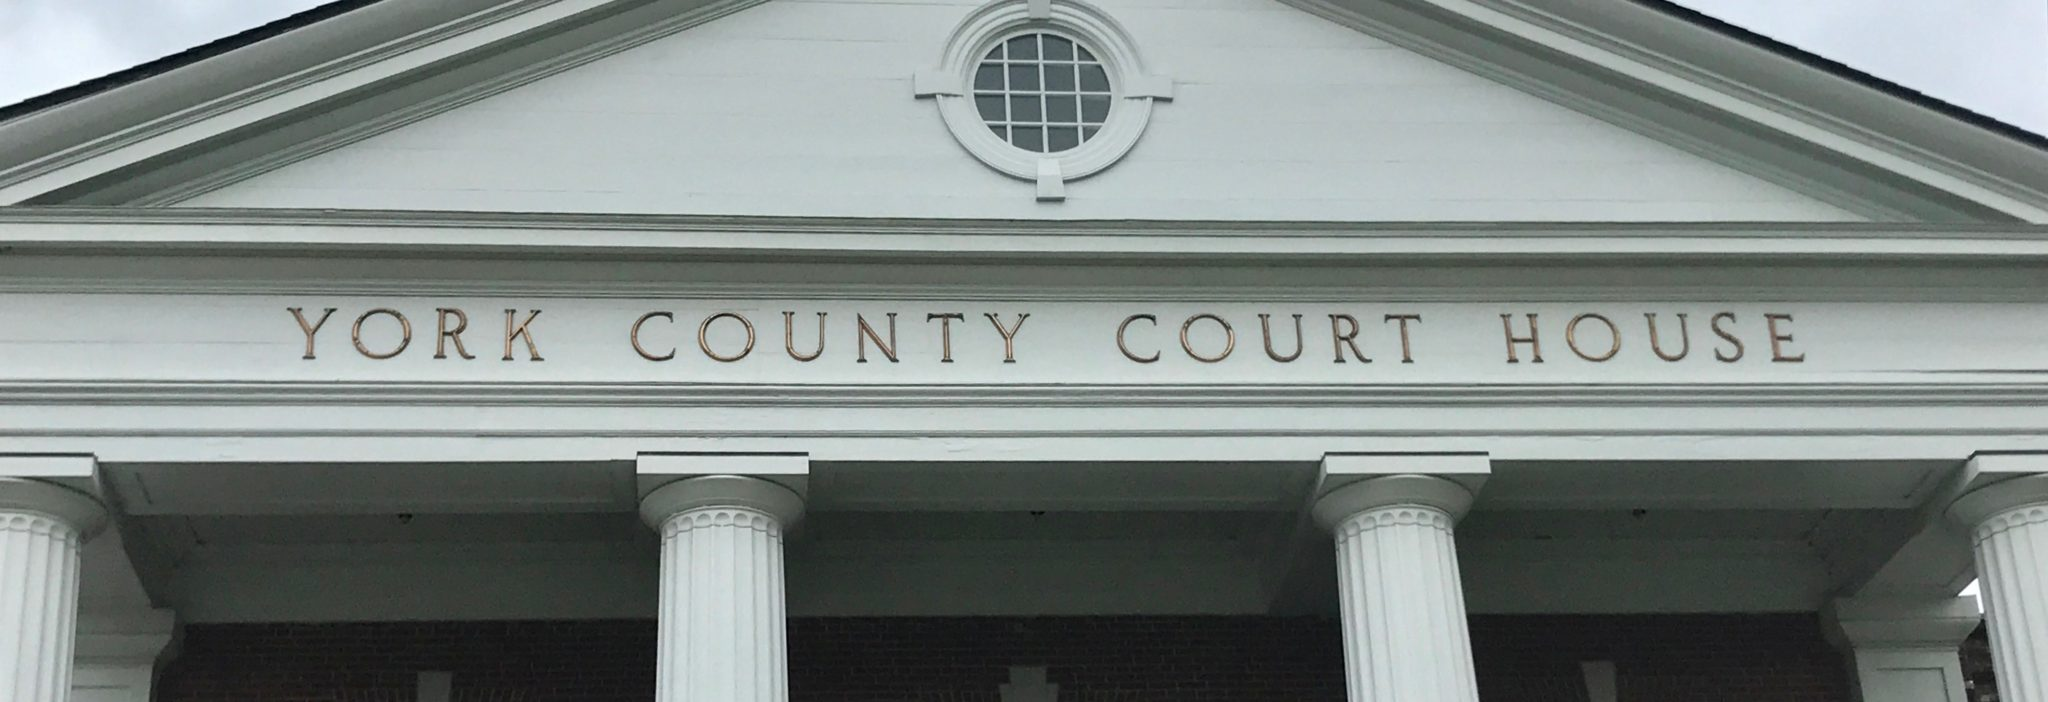 York County Court House - Criminal / Probate